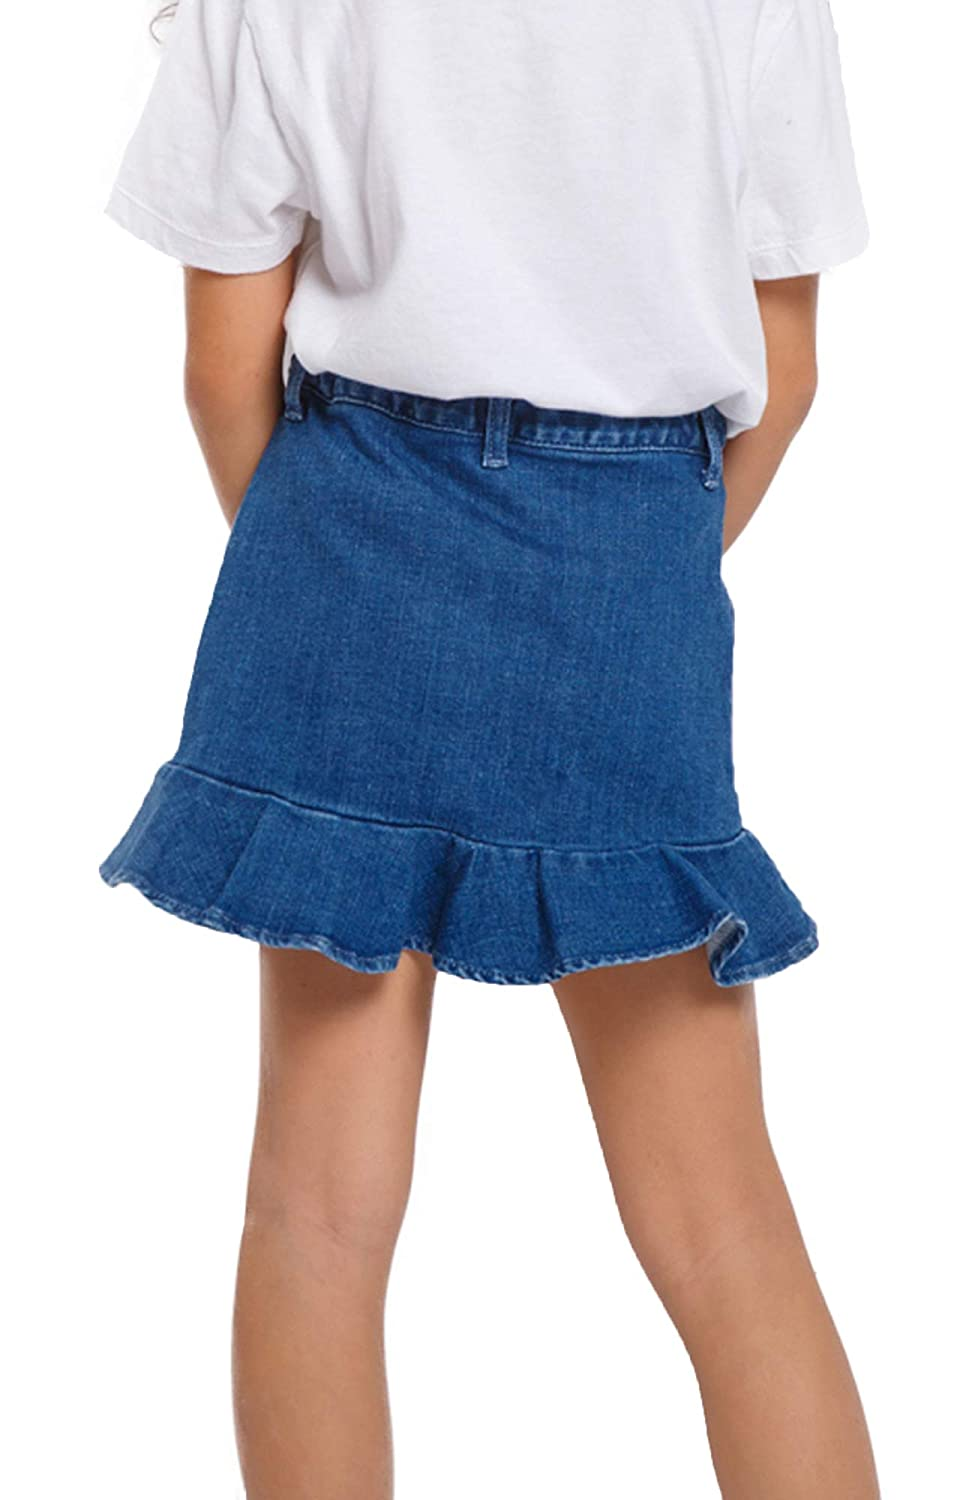 M.D.K Girls Classic Comfy Denim Ruffle Trim Button End Cute Pocket Mini Skirt